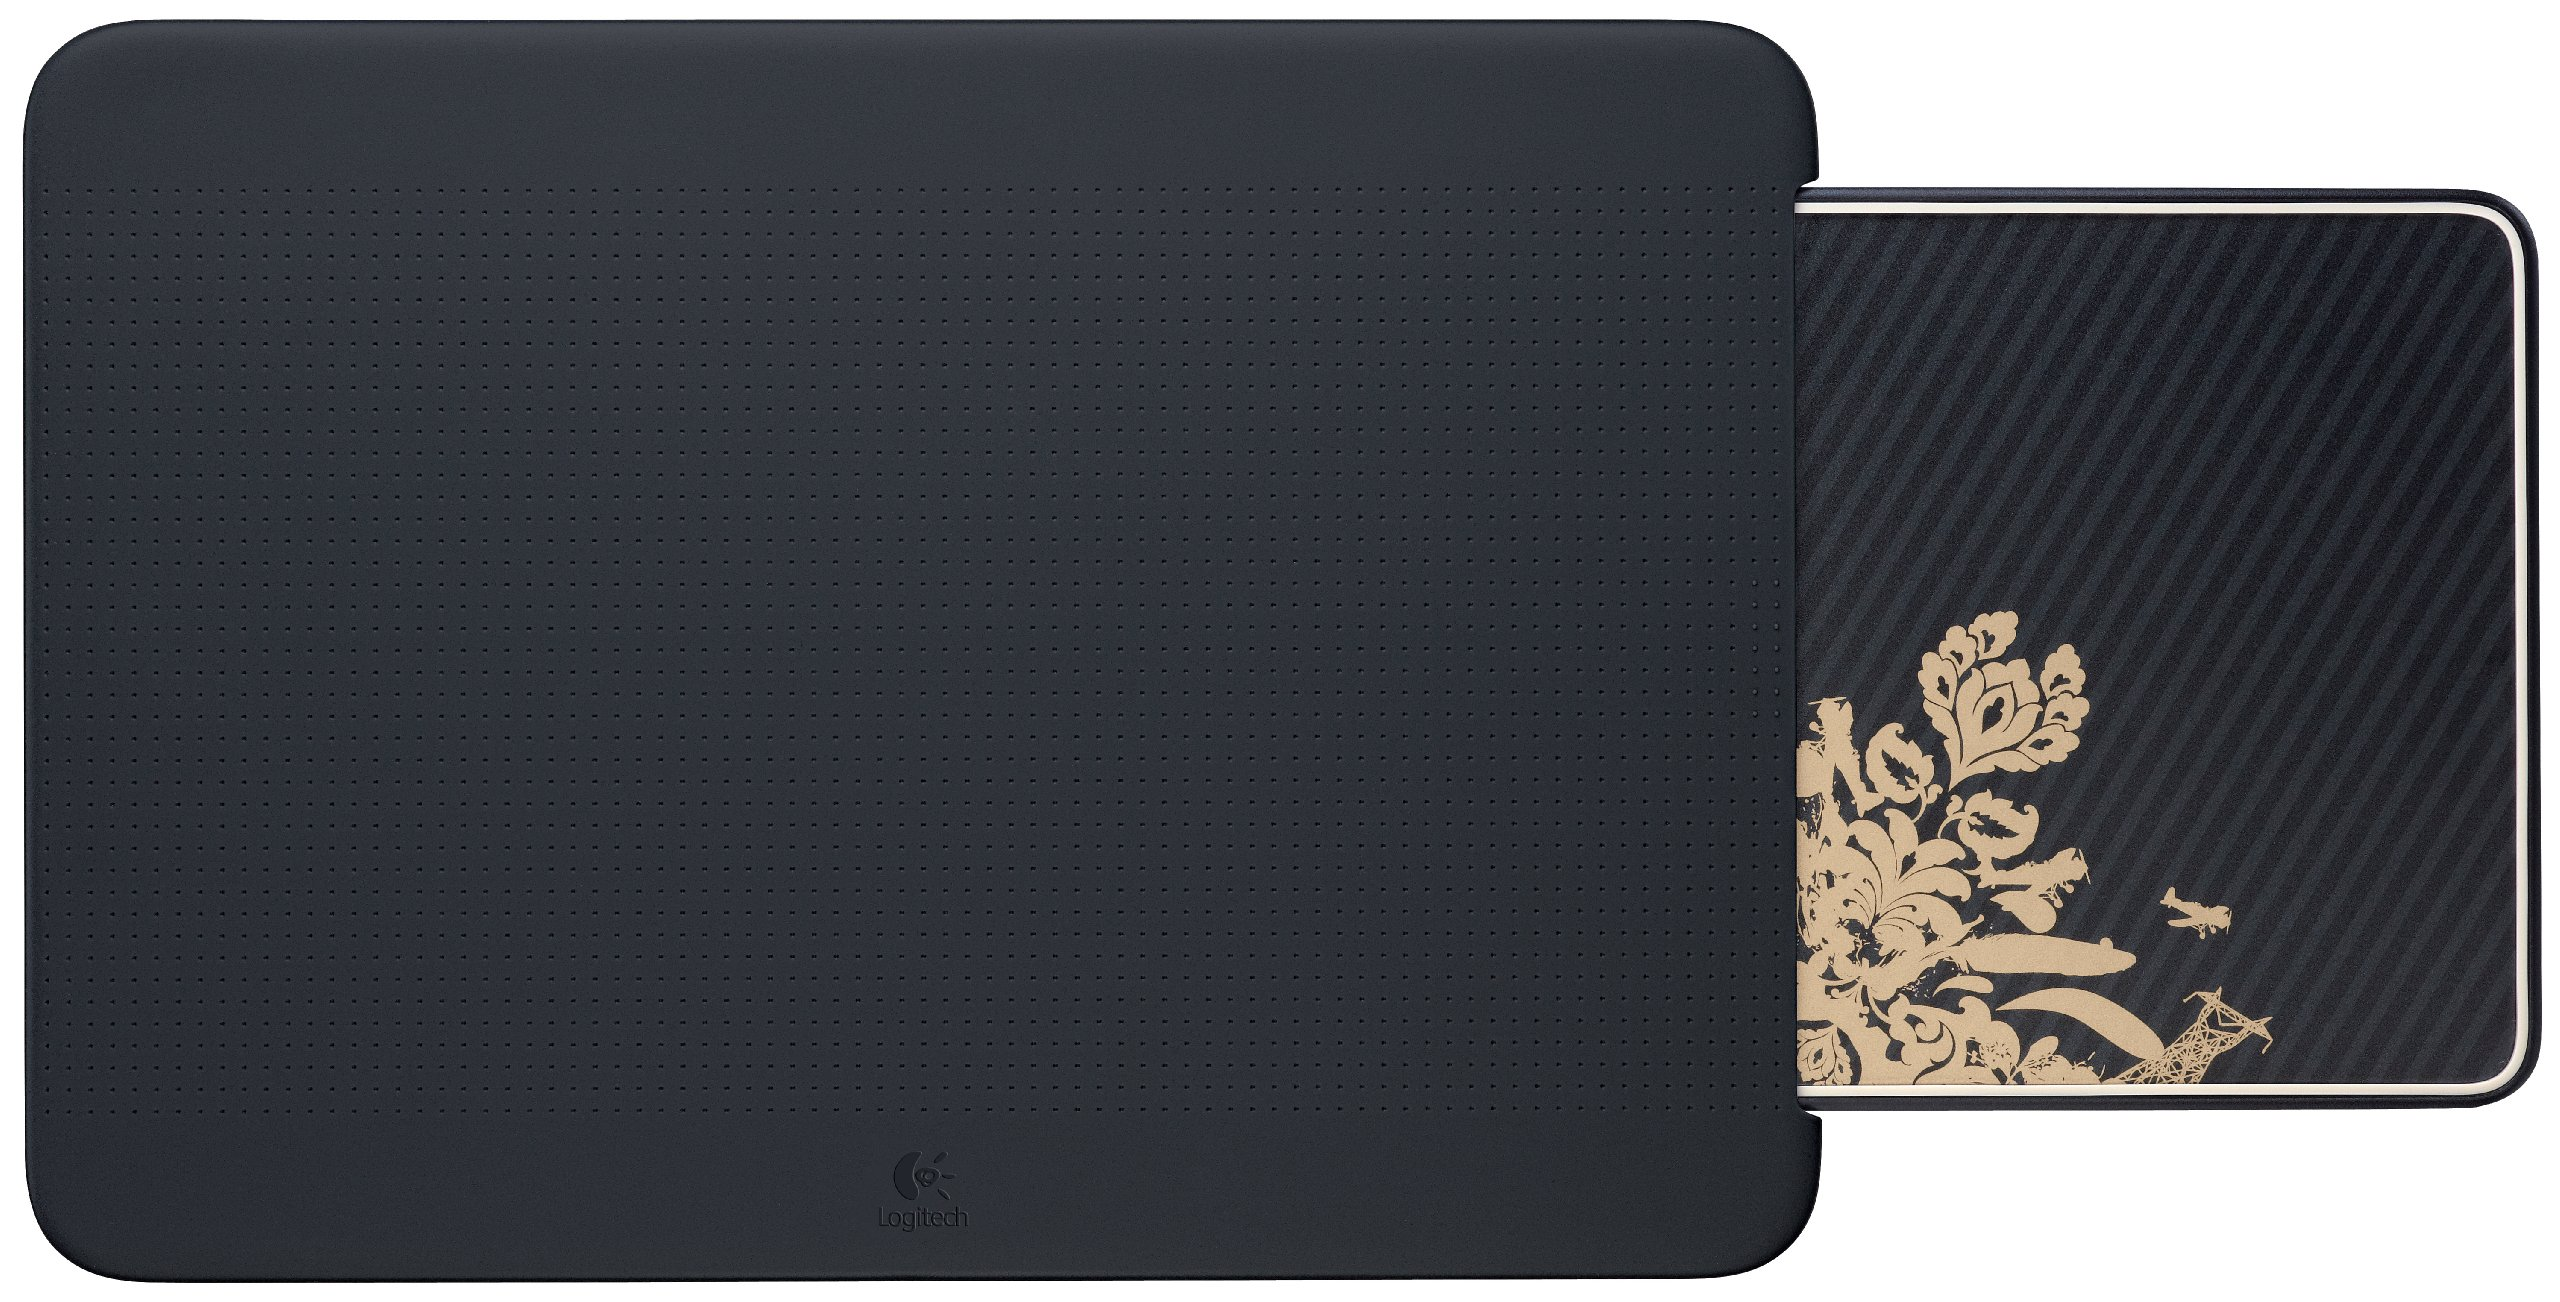 Logitech Portable Lapdesk N315 with Retractable Mouse Pad, Victorian Wallpaper,  (939-000389)